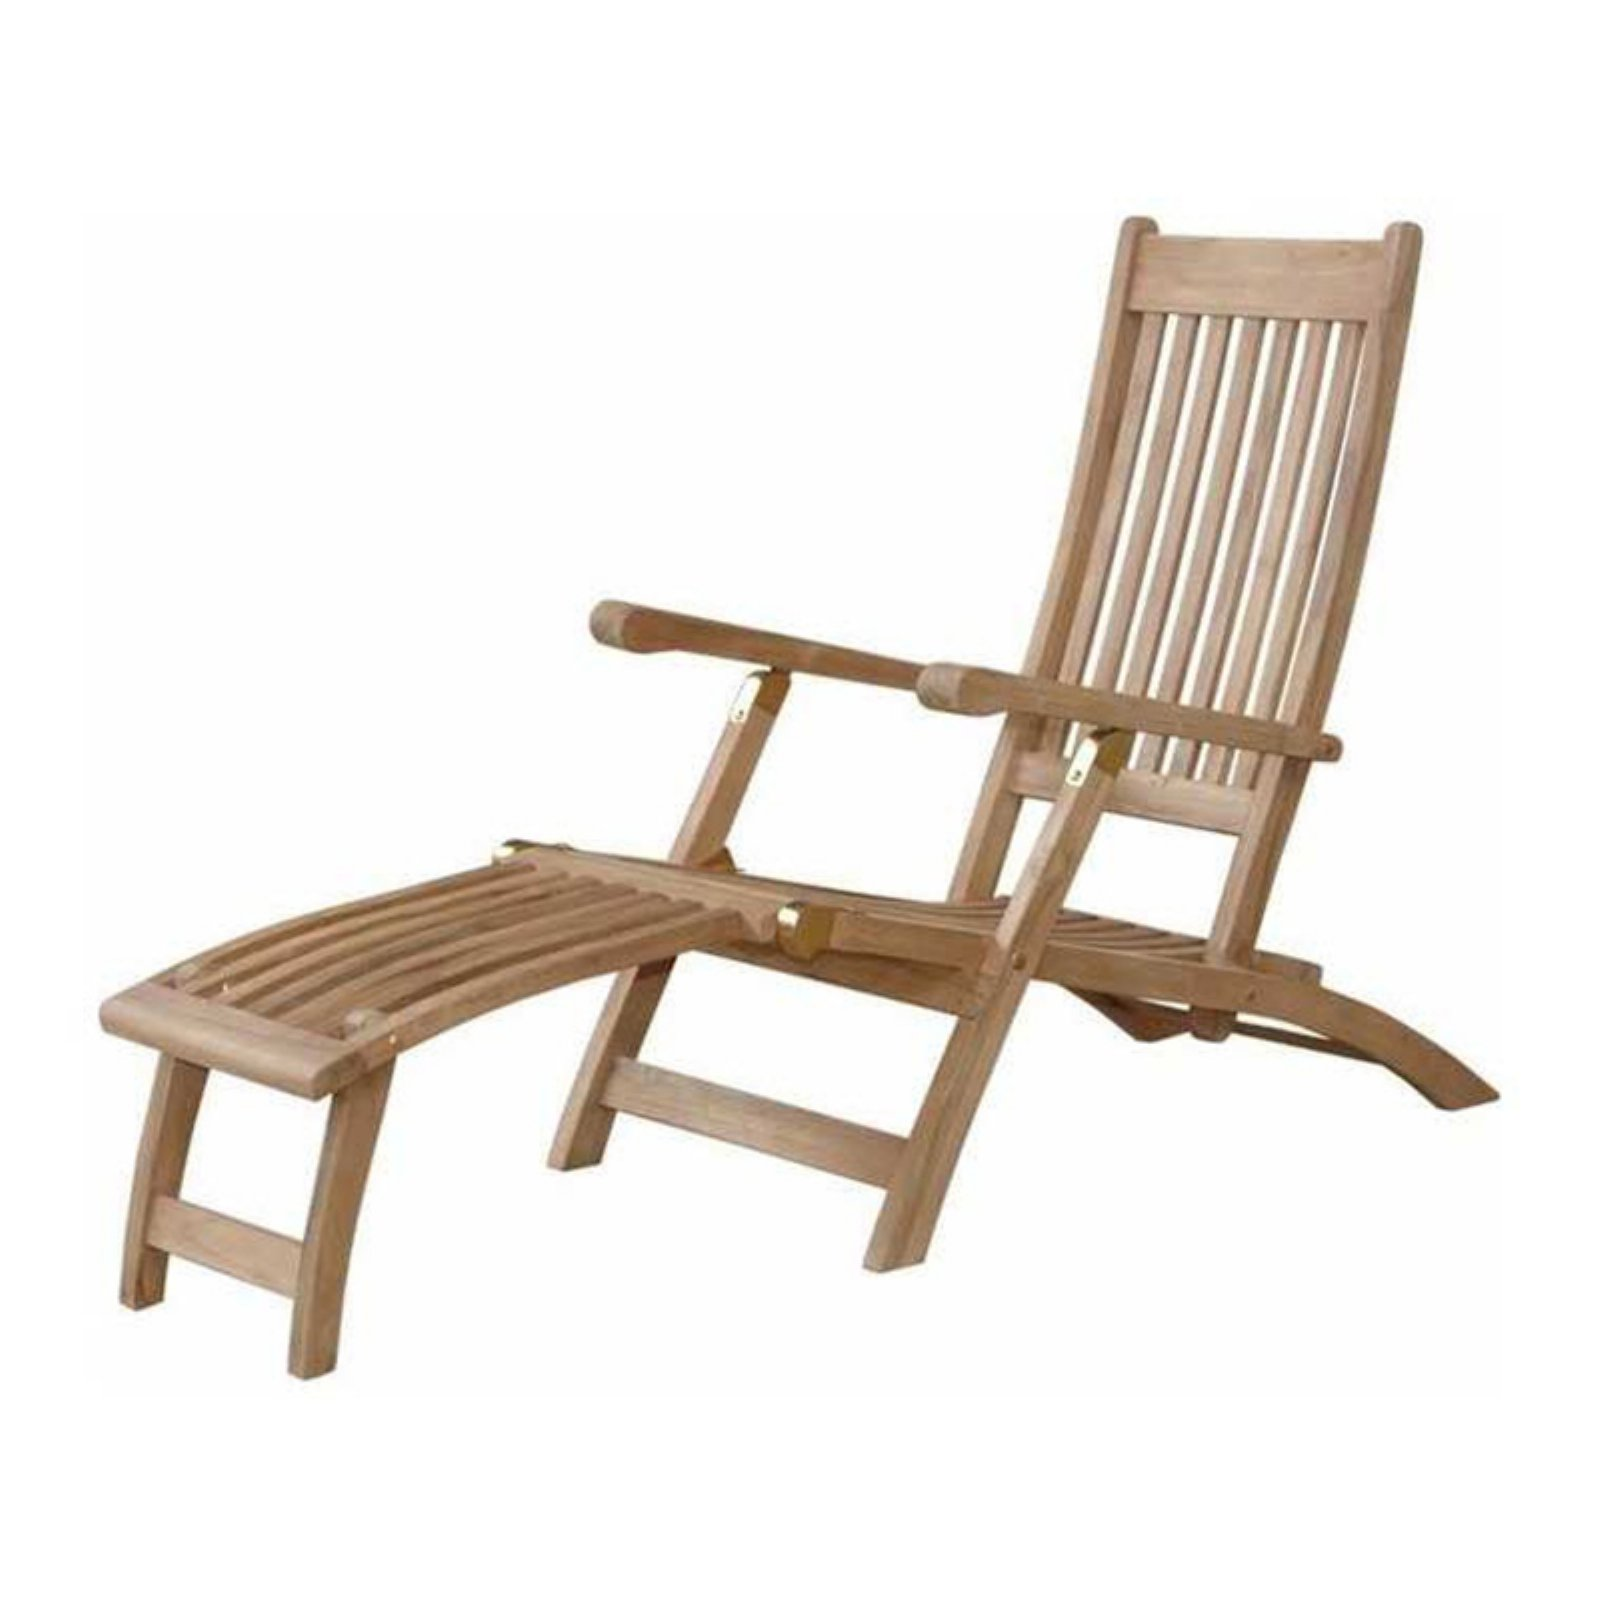 Anderson Teak Tropicana Steamers Outdoor Lounge Chair